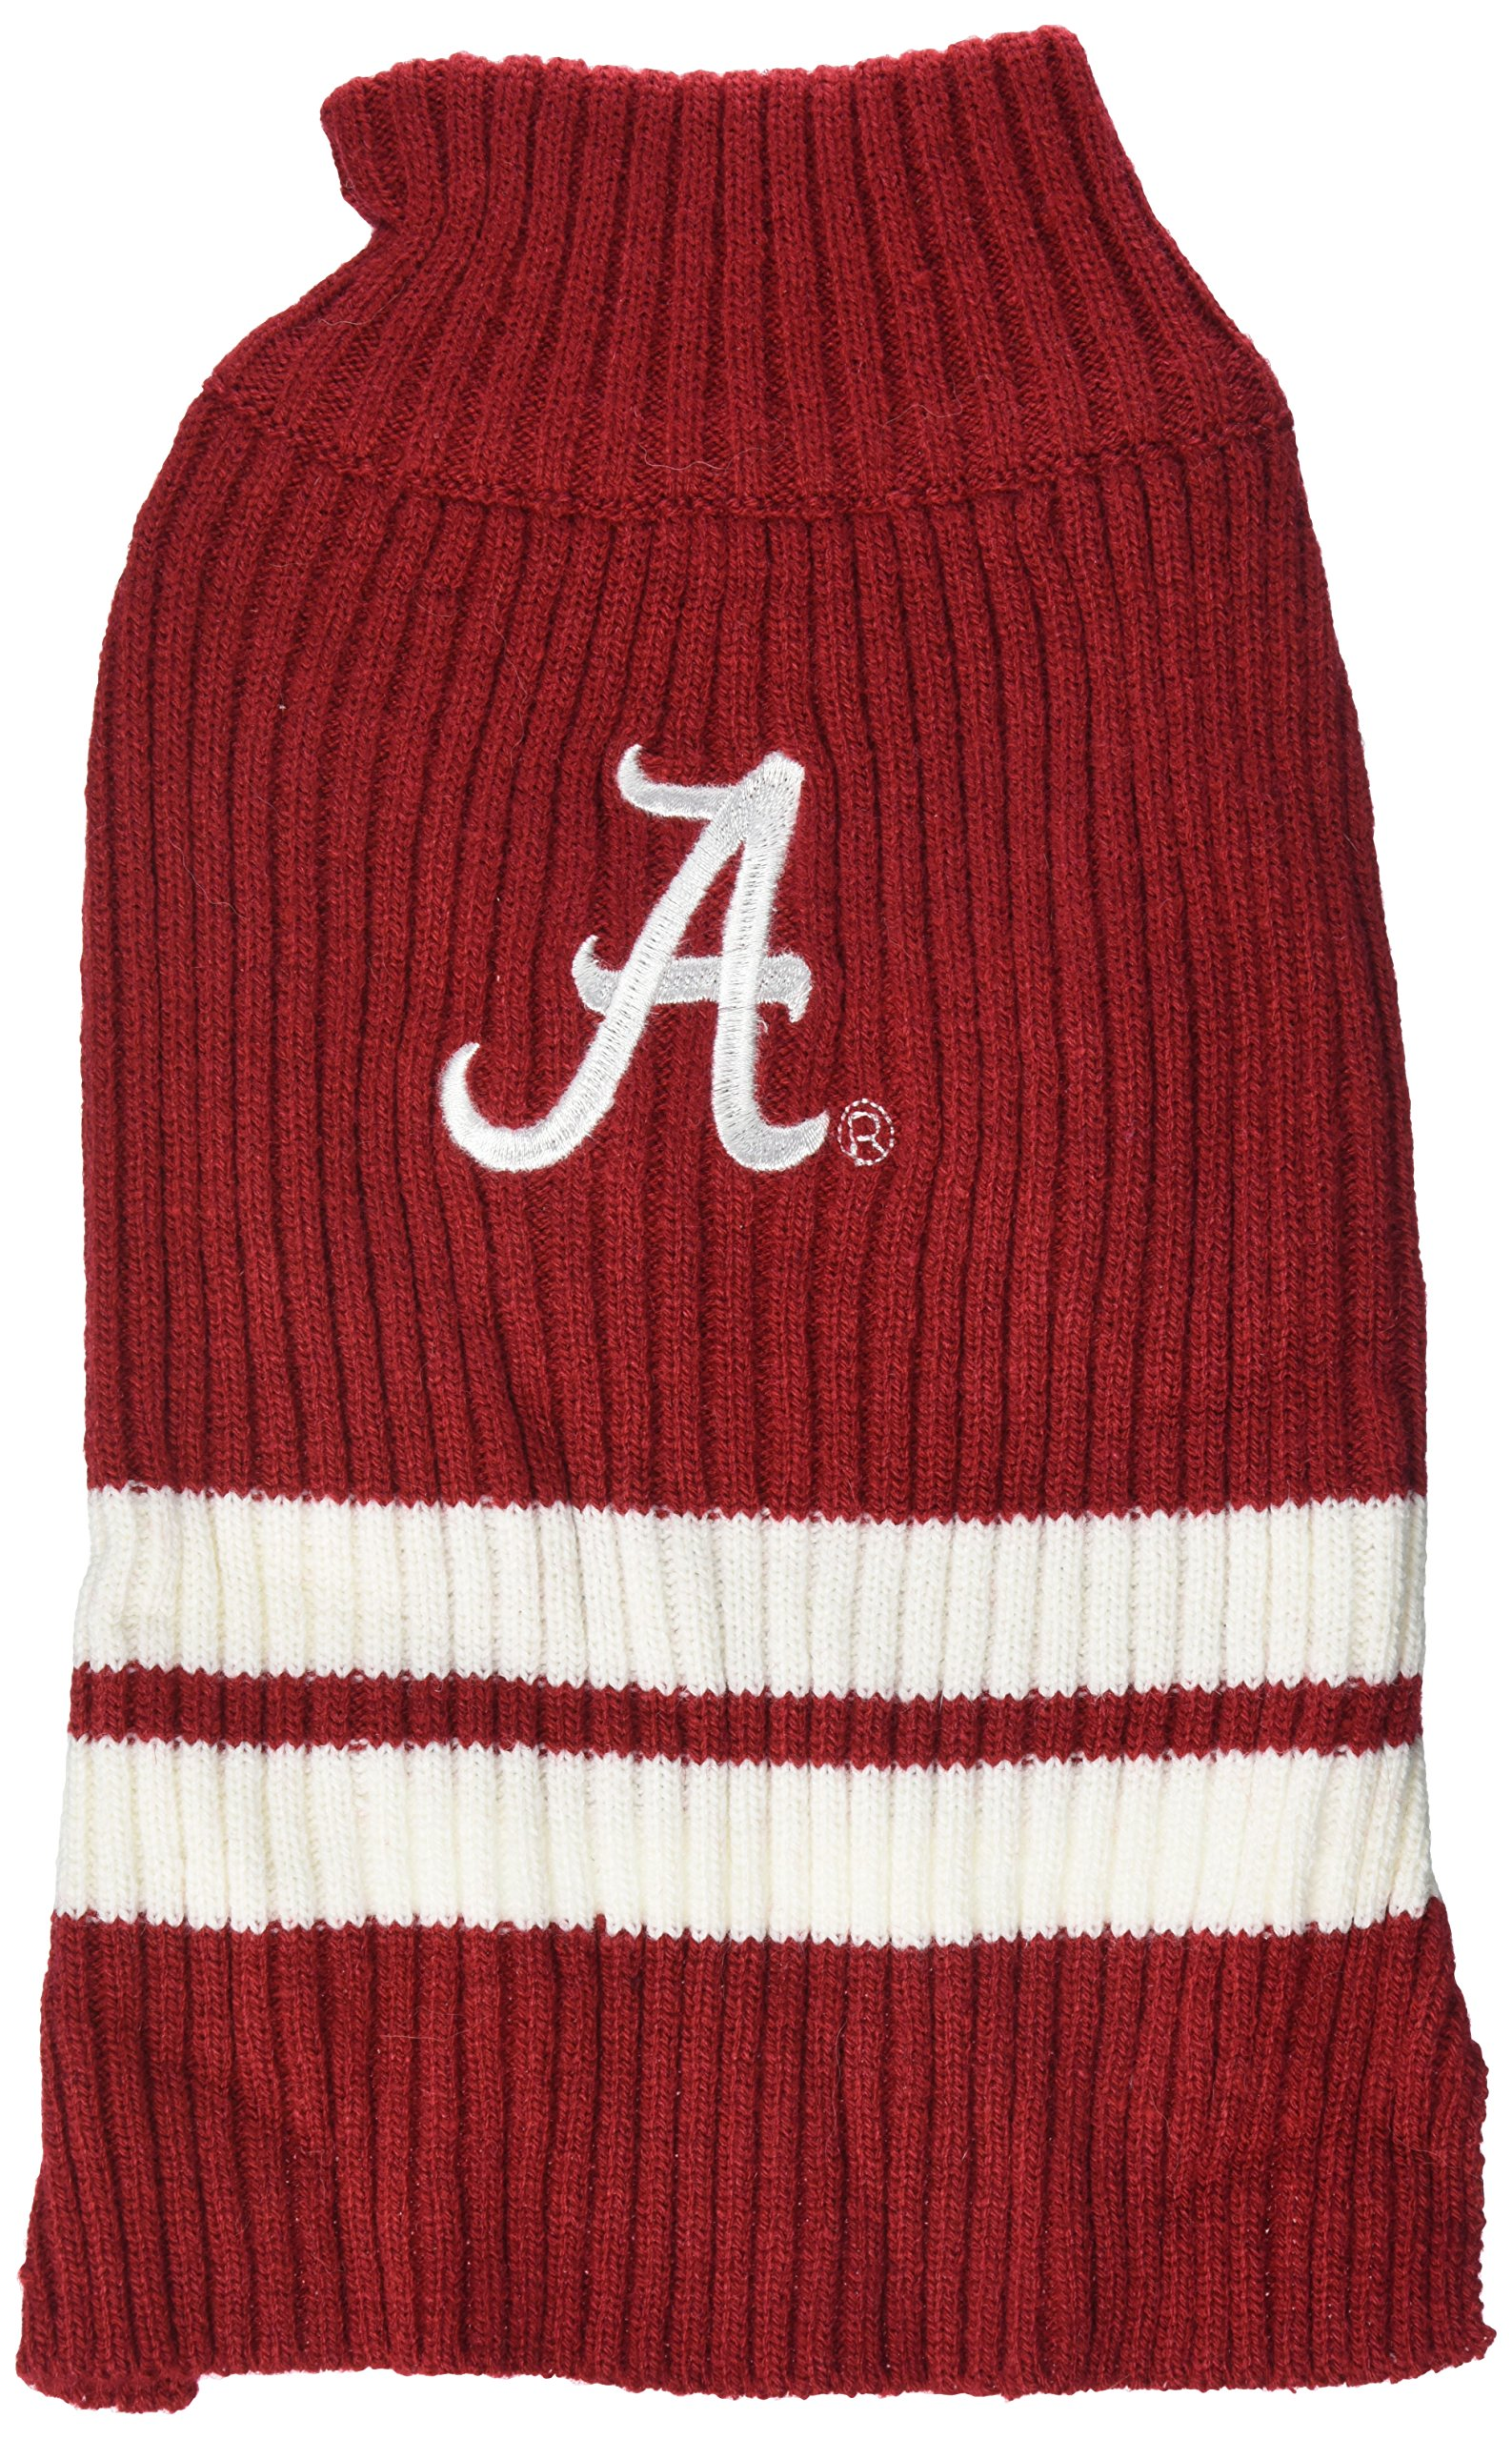 Pets First Collegiate Alabama Crimson Tide Pet Sweater, Small